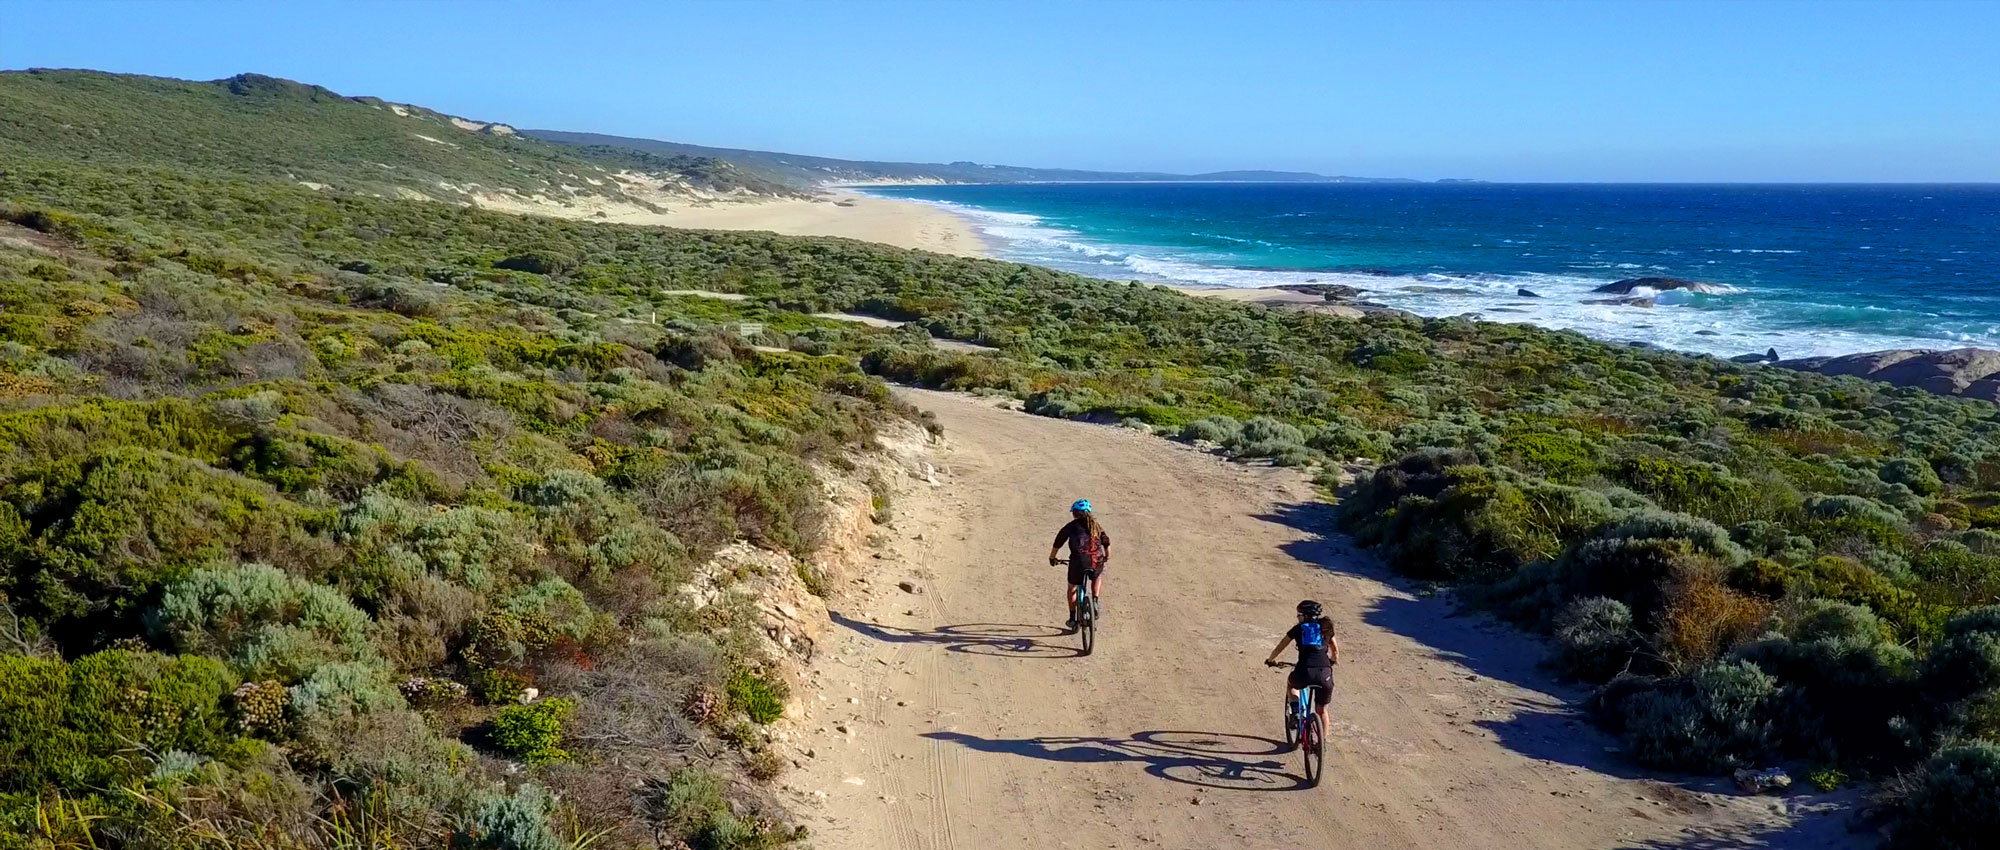 Discover Margaret River by bike